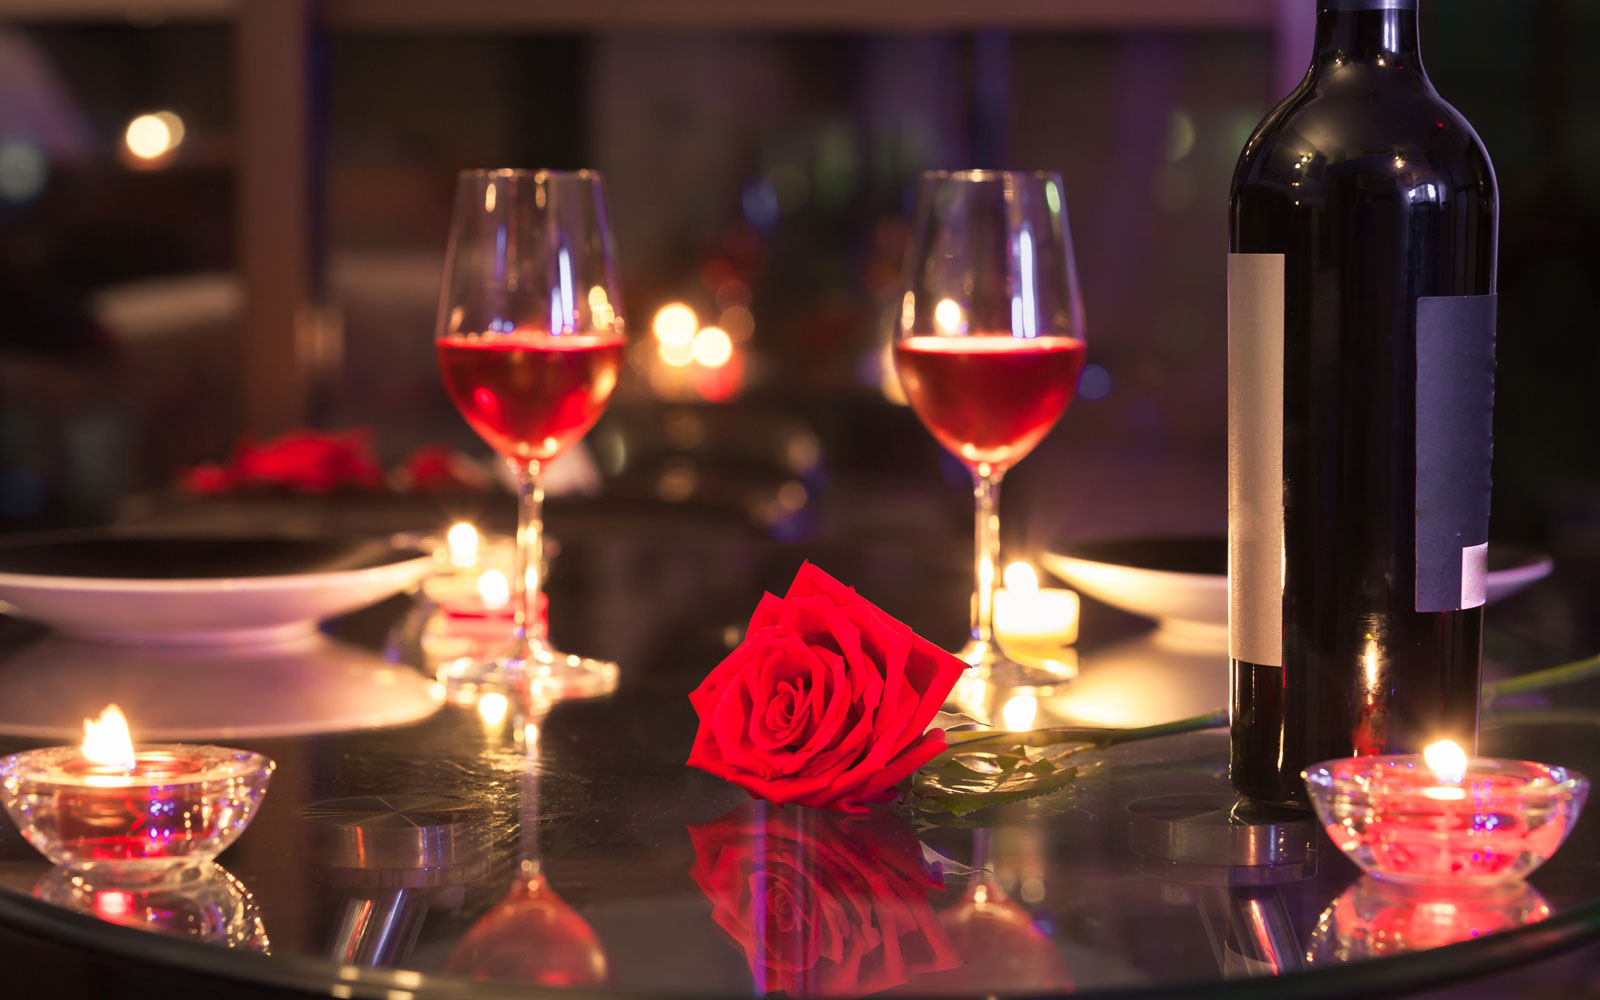 OpenTable announced the 100 most romantic restaurants in the U.S.